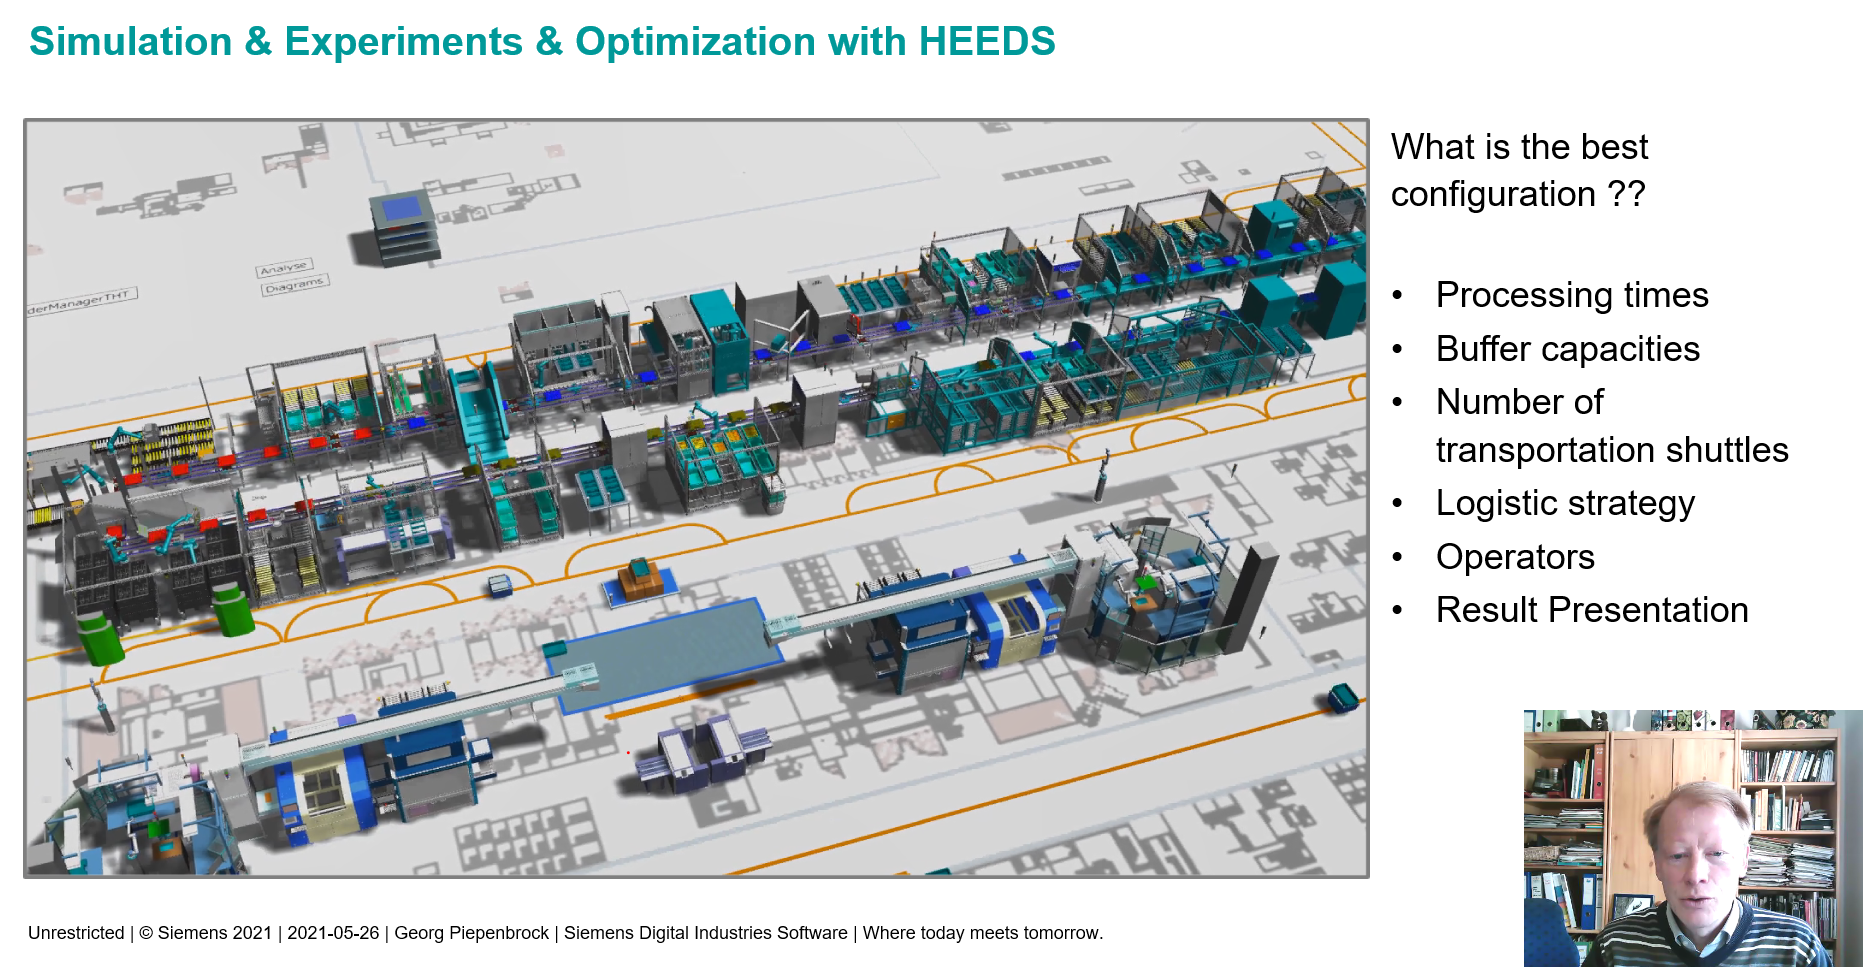 Plant Simulation Connection to HEEDS Optimization using the Sherpa Algorithm